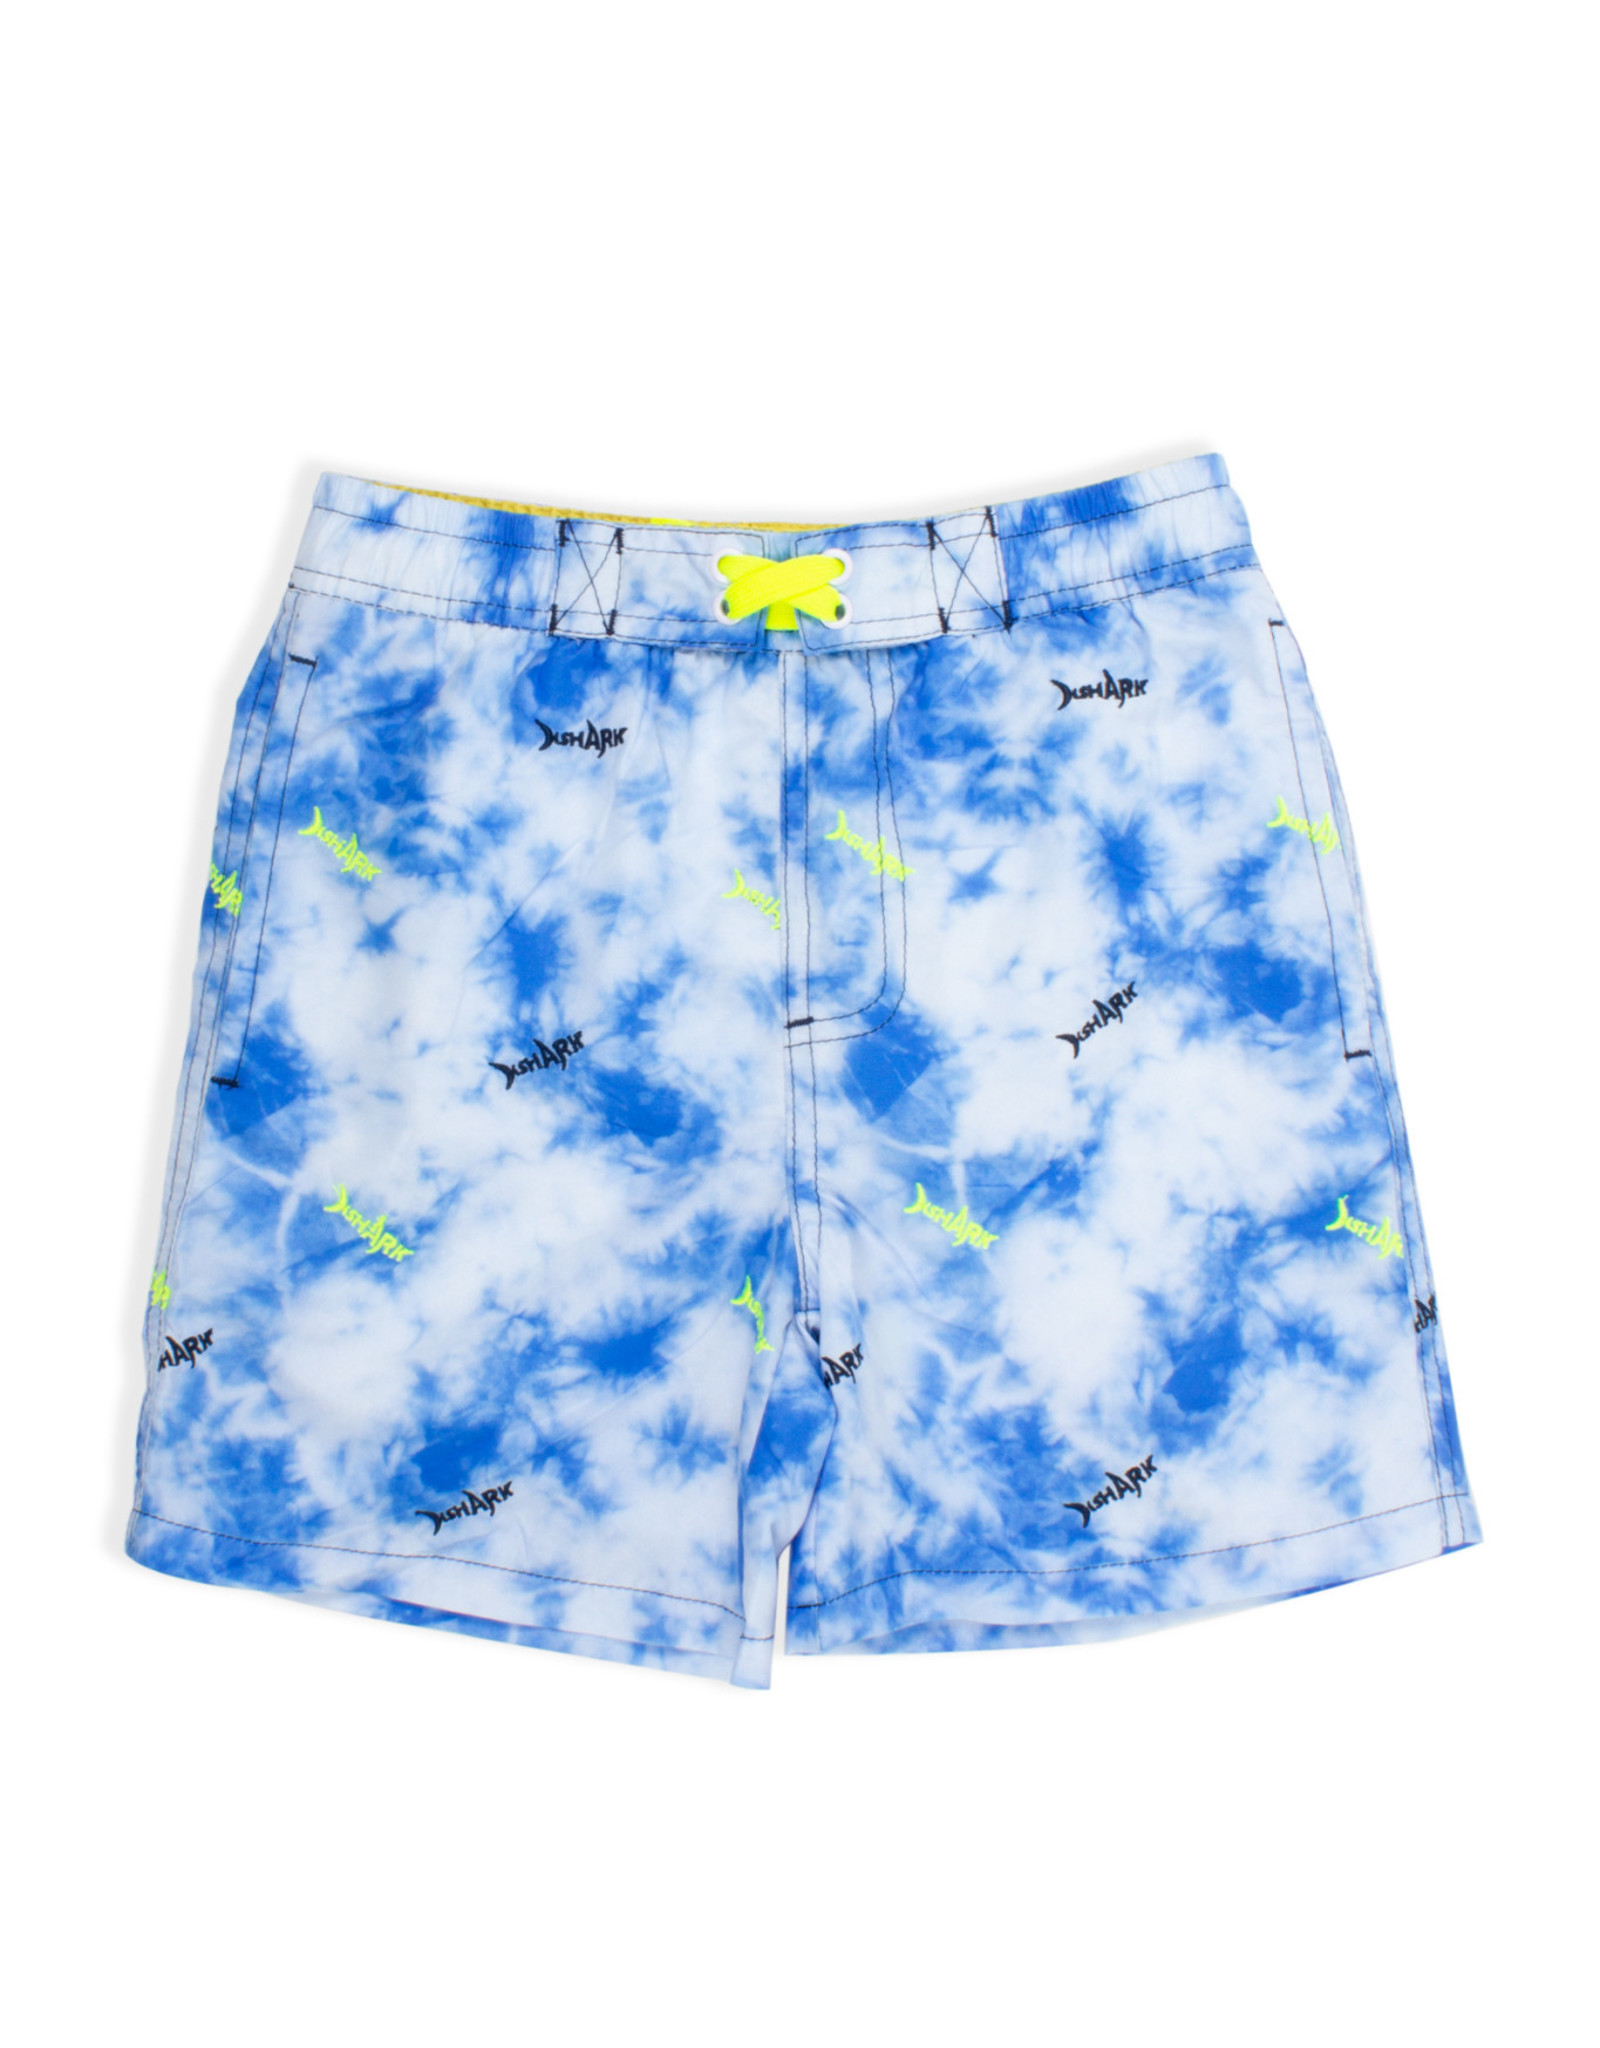 Shade Critters Shade Critters Swim Trunks Tie Dye Shark